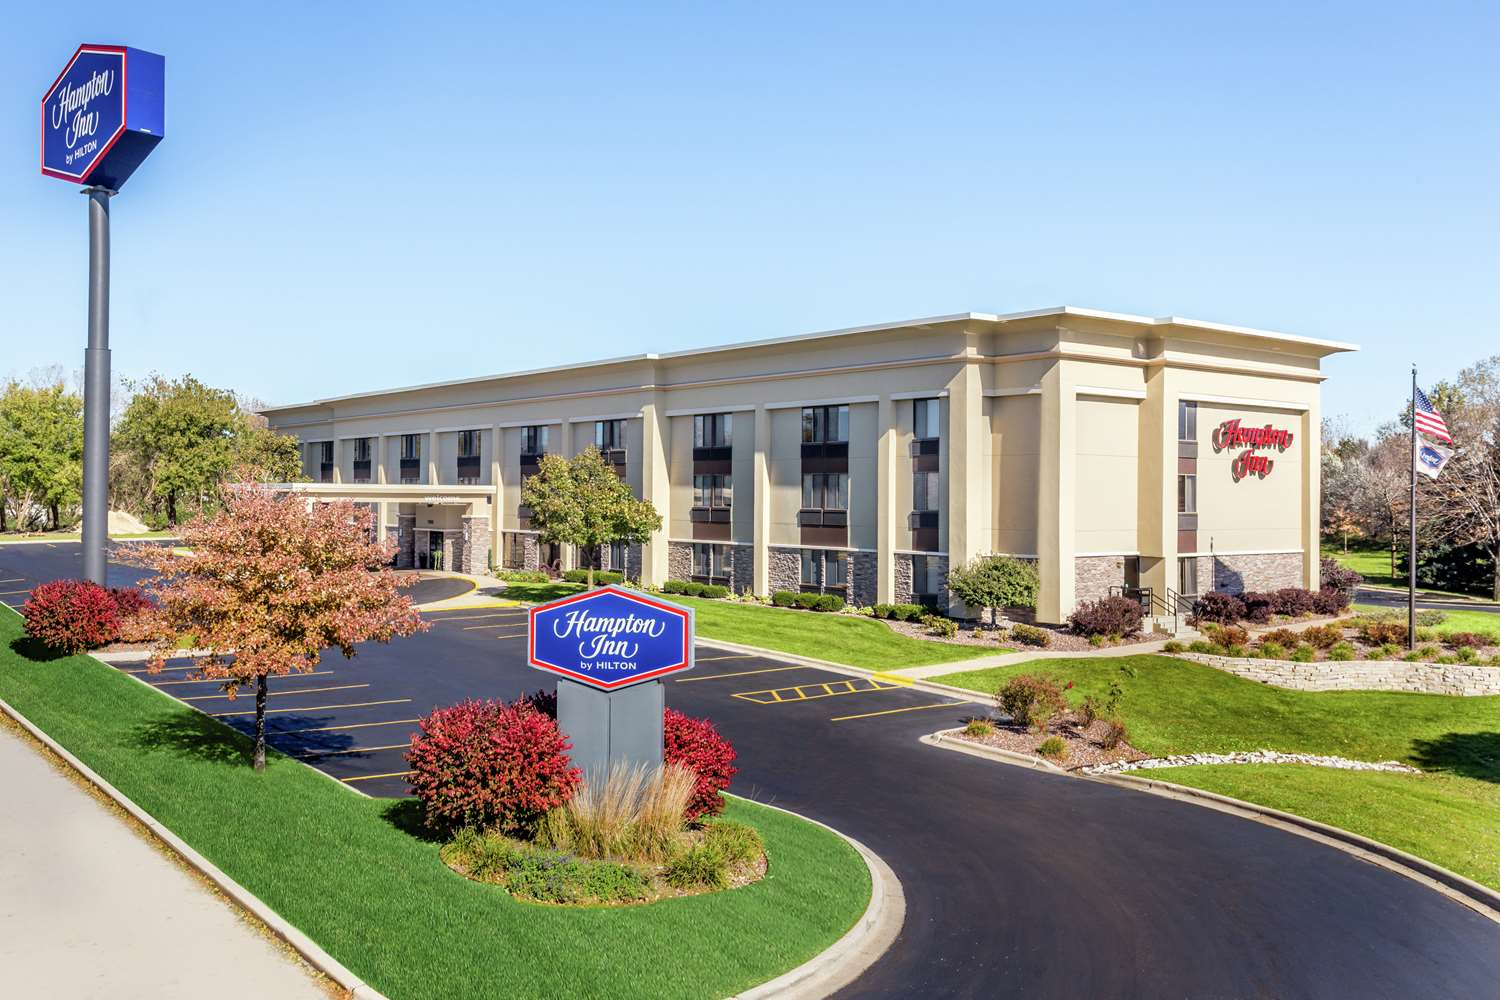 Hampton Inn Airport Milwaukee